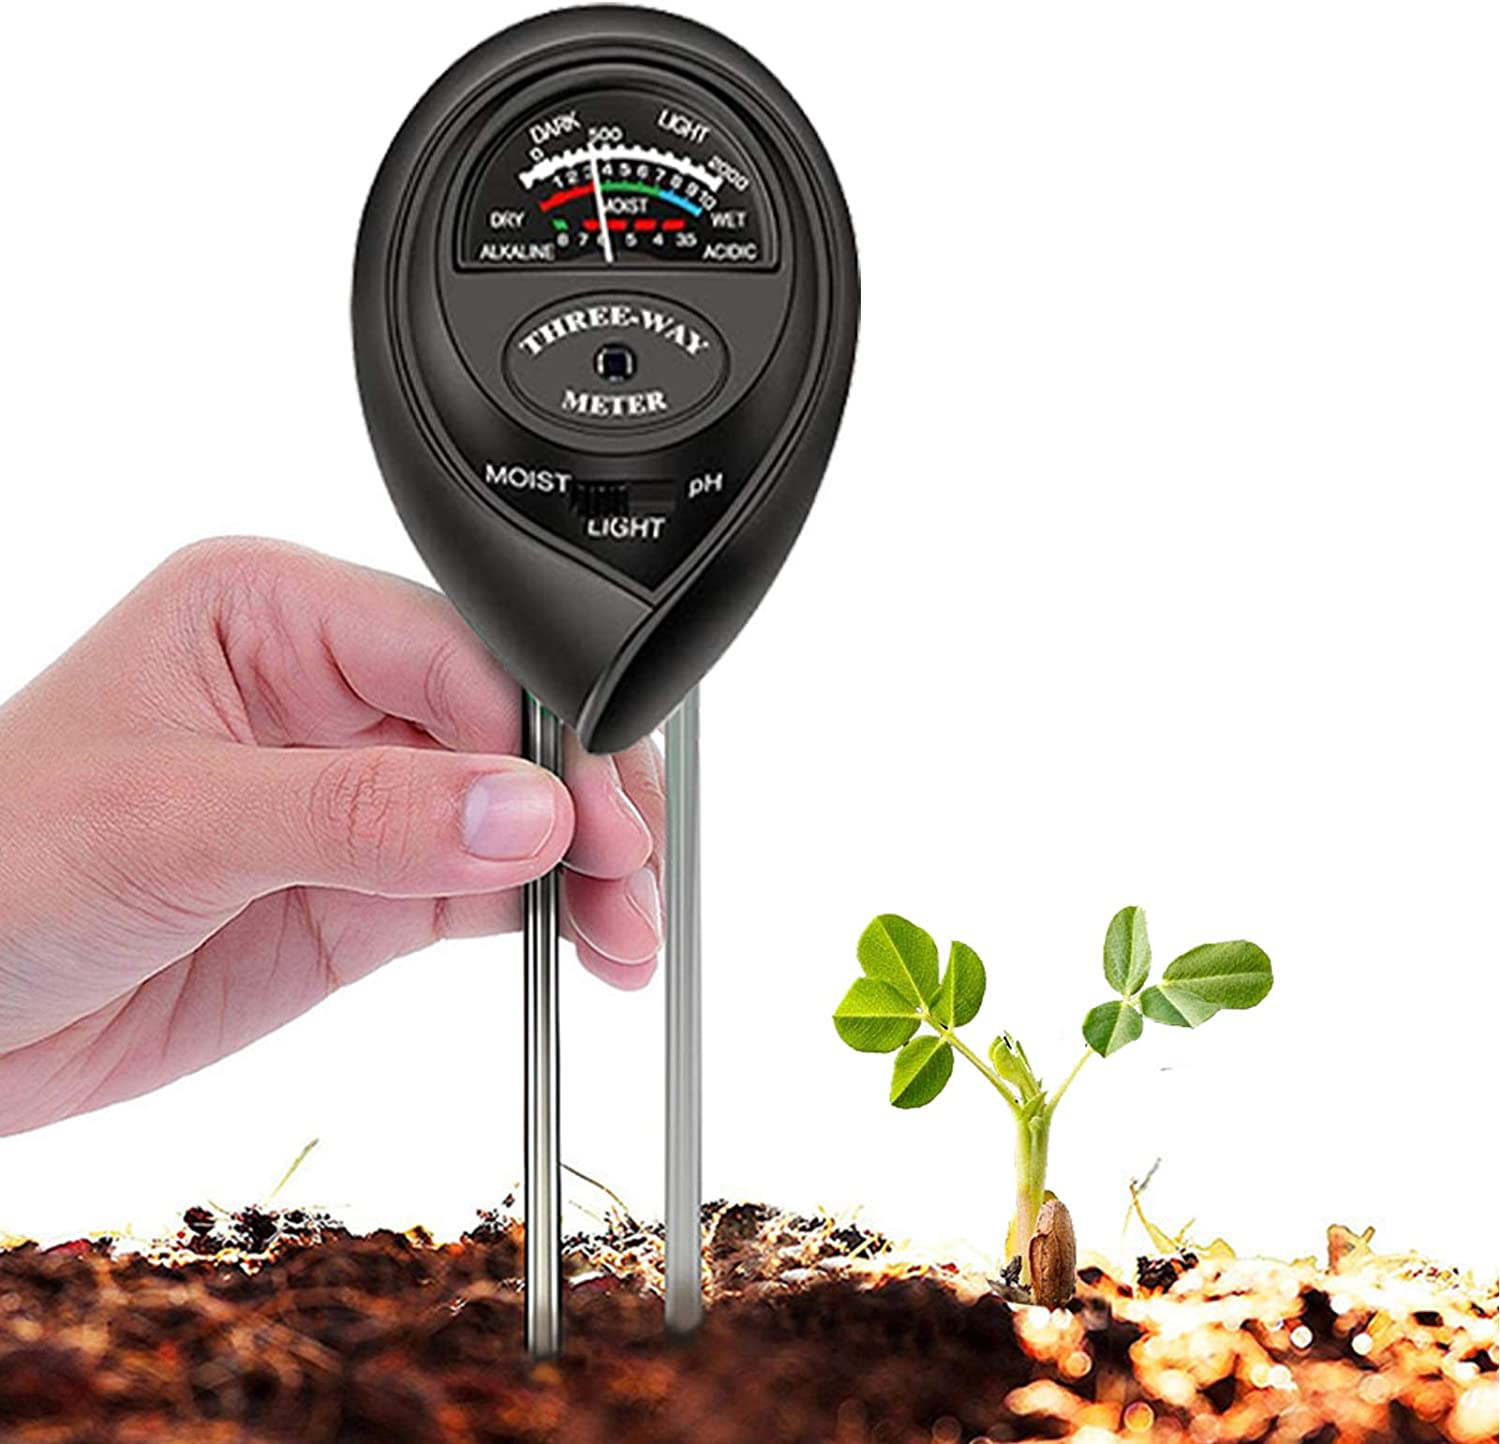 Gardens Farms Without Battery C1 Round 3-in-1 Soil Tester Moisture Analyzer Homes Light and PH Acid and Alkali Tester for Plants